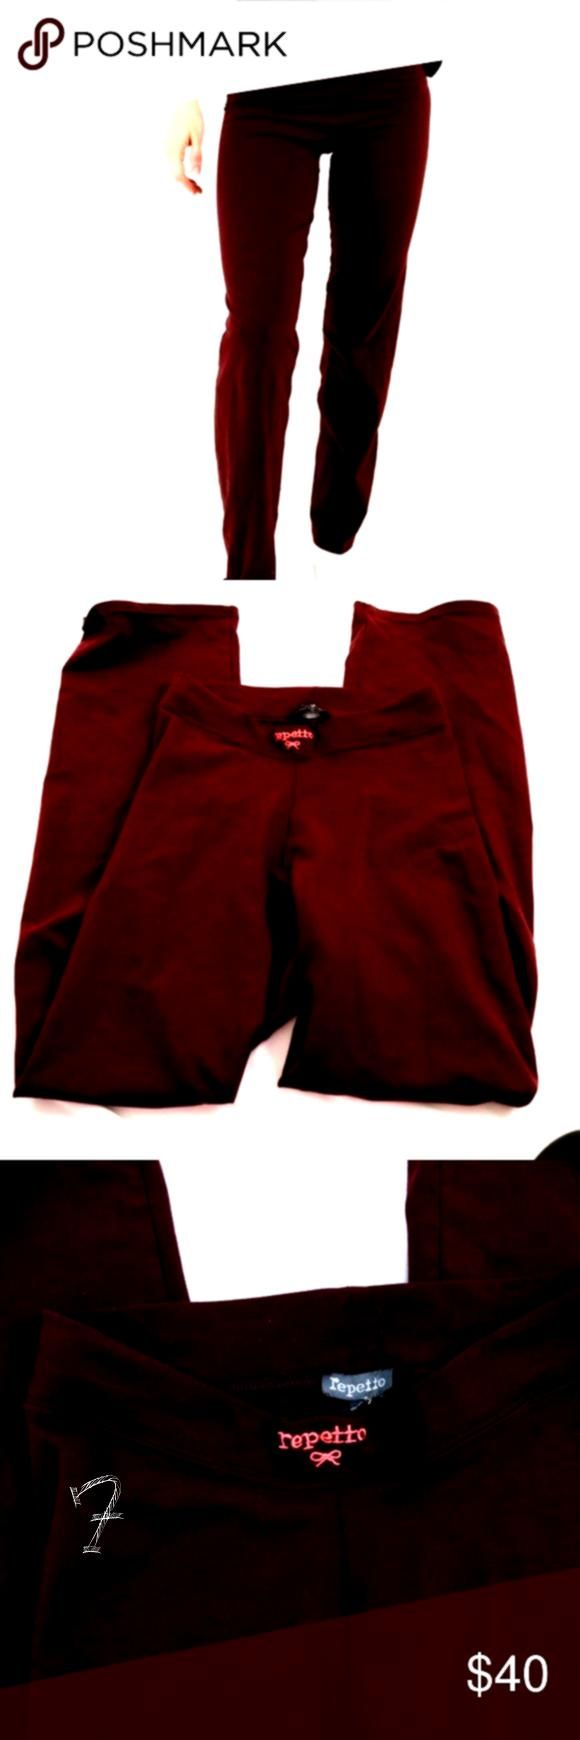 ballet dance pants small E7 Repetto maroon colored pants So soft and e Repetto ballet dance pants small E7 Repetto maroon colored pants So soft and eRepetto ballet dance...